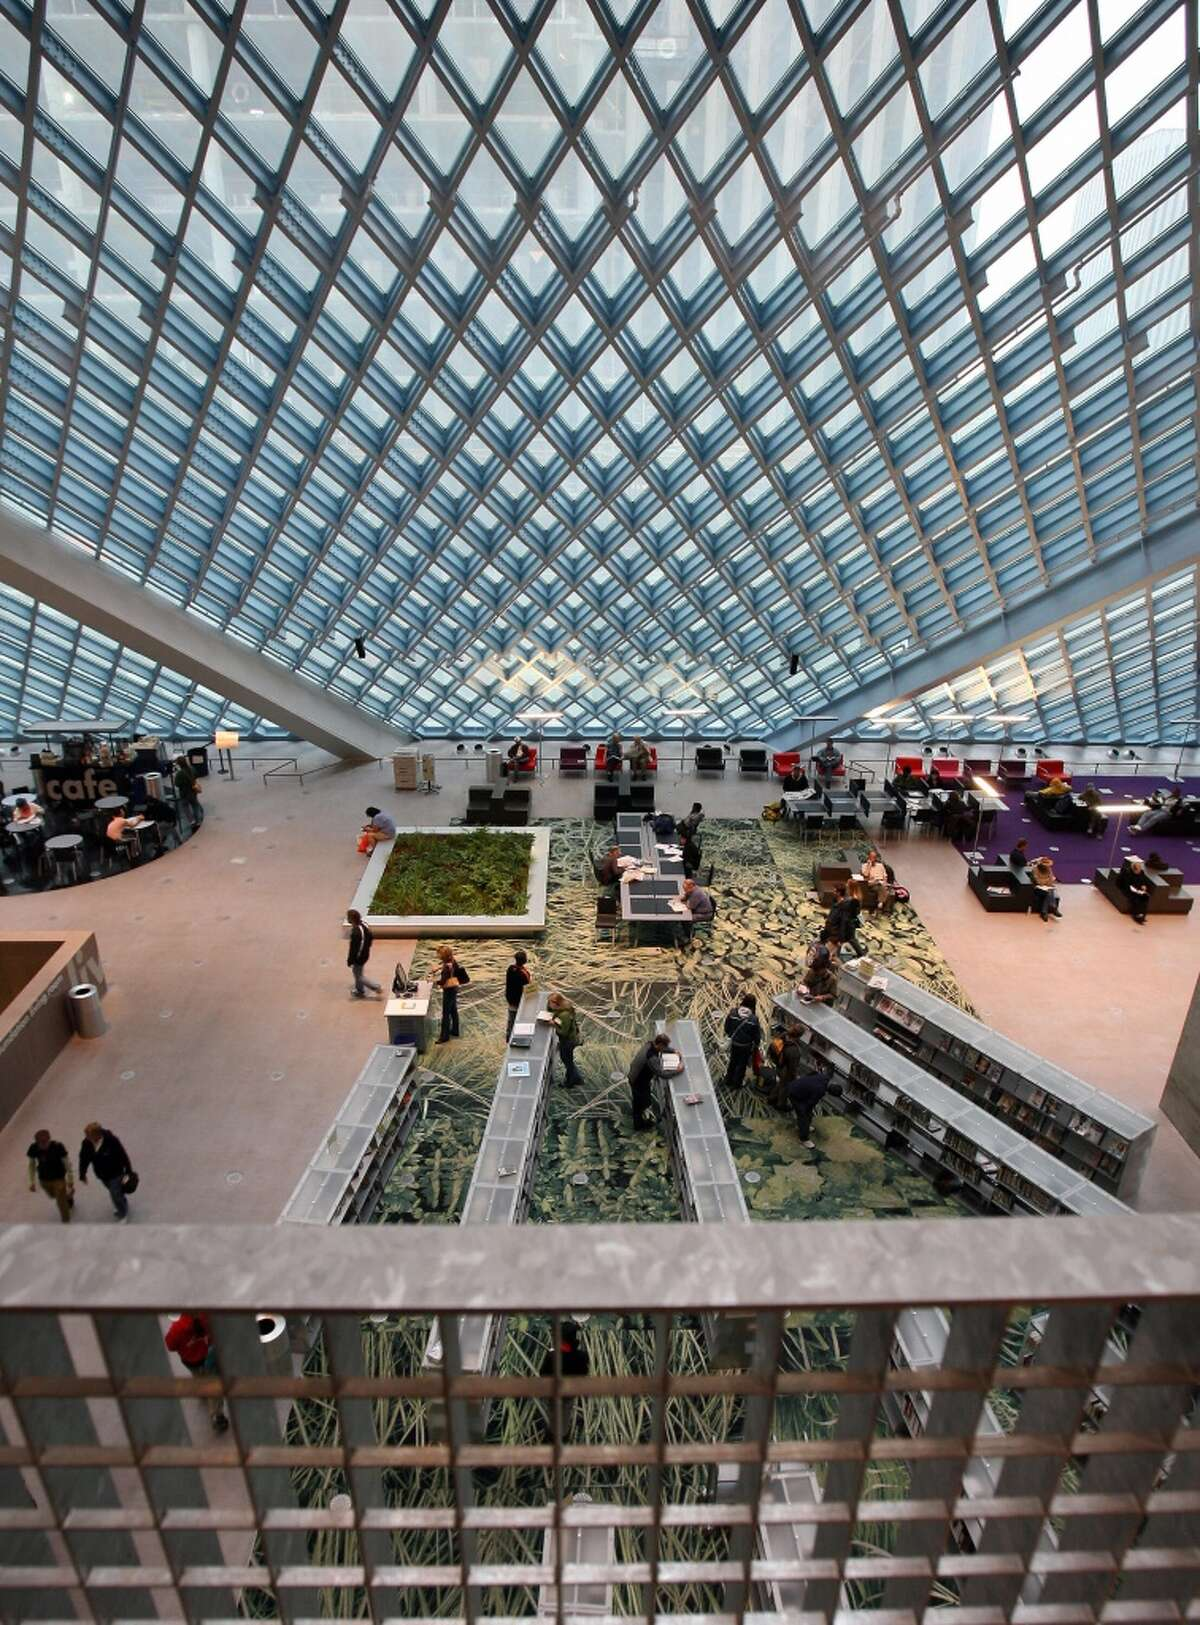 The Seattle Public Library's Central Library opened in 2004. Writing in The New Yorker, critic Paul Goldberger called it